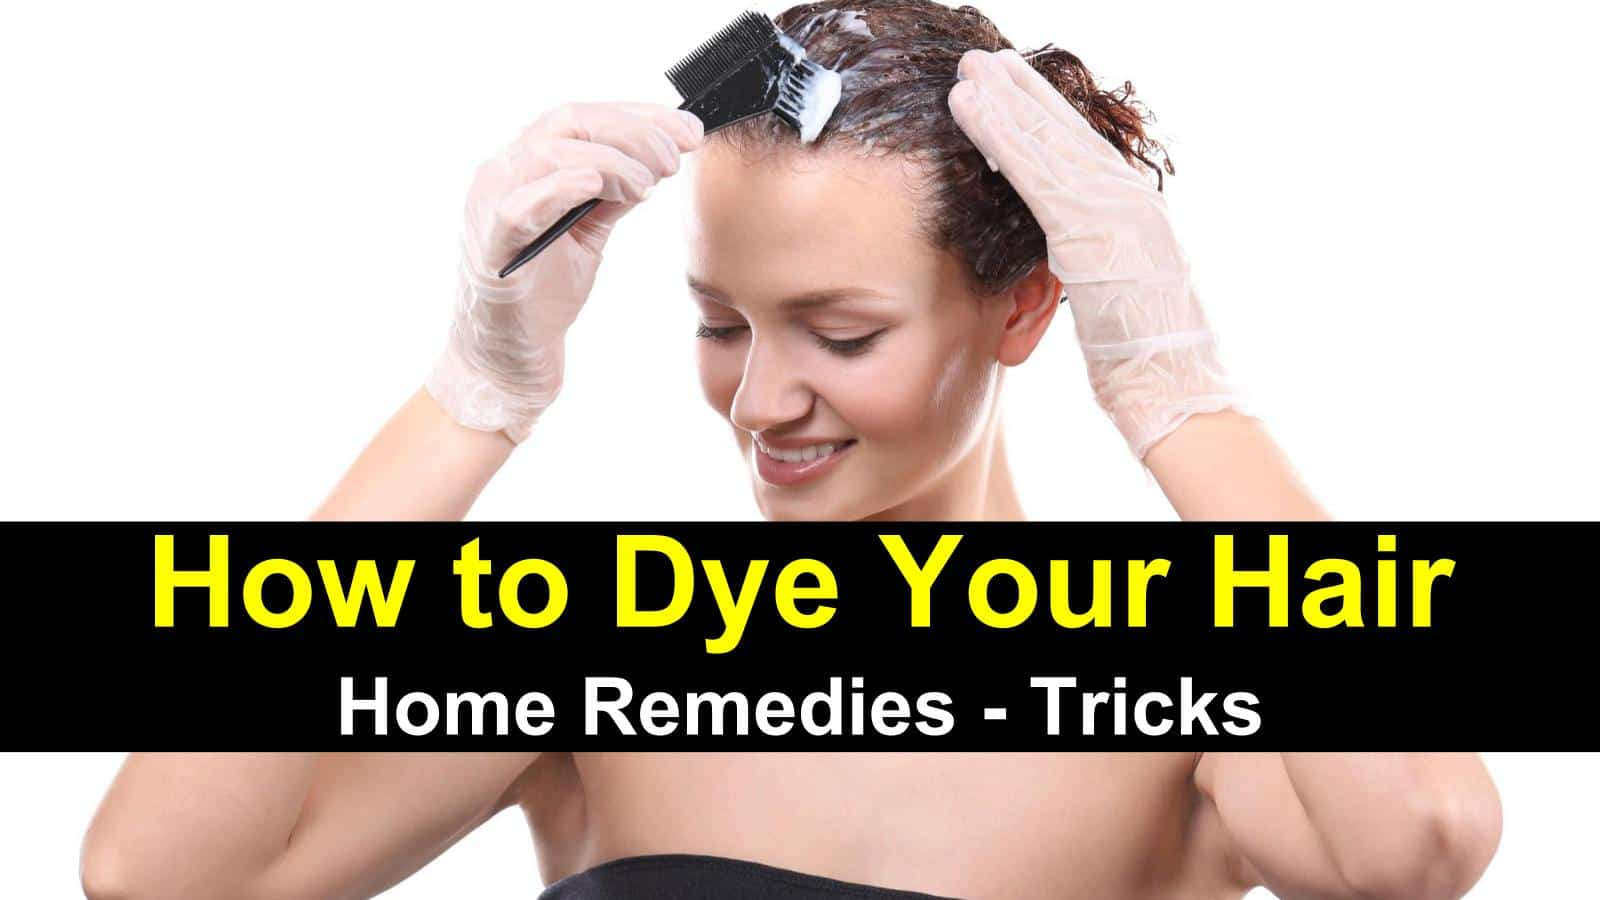 Home remedies and tricks on how to dye your hair